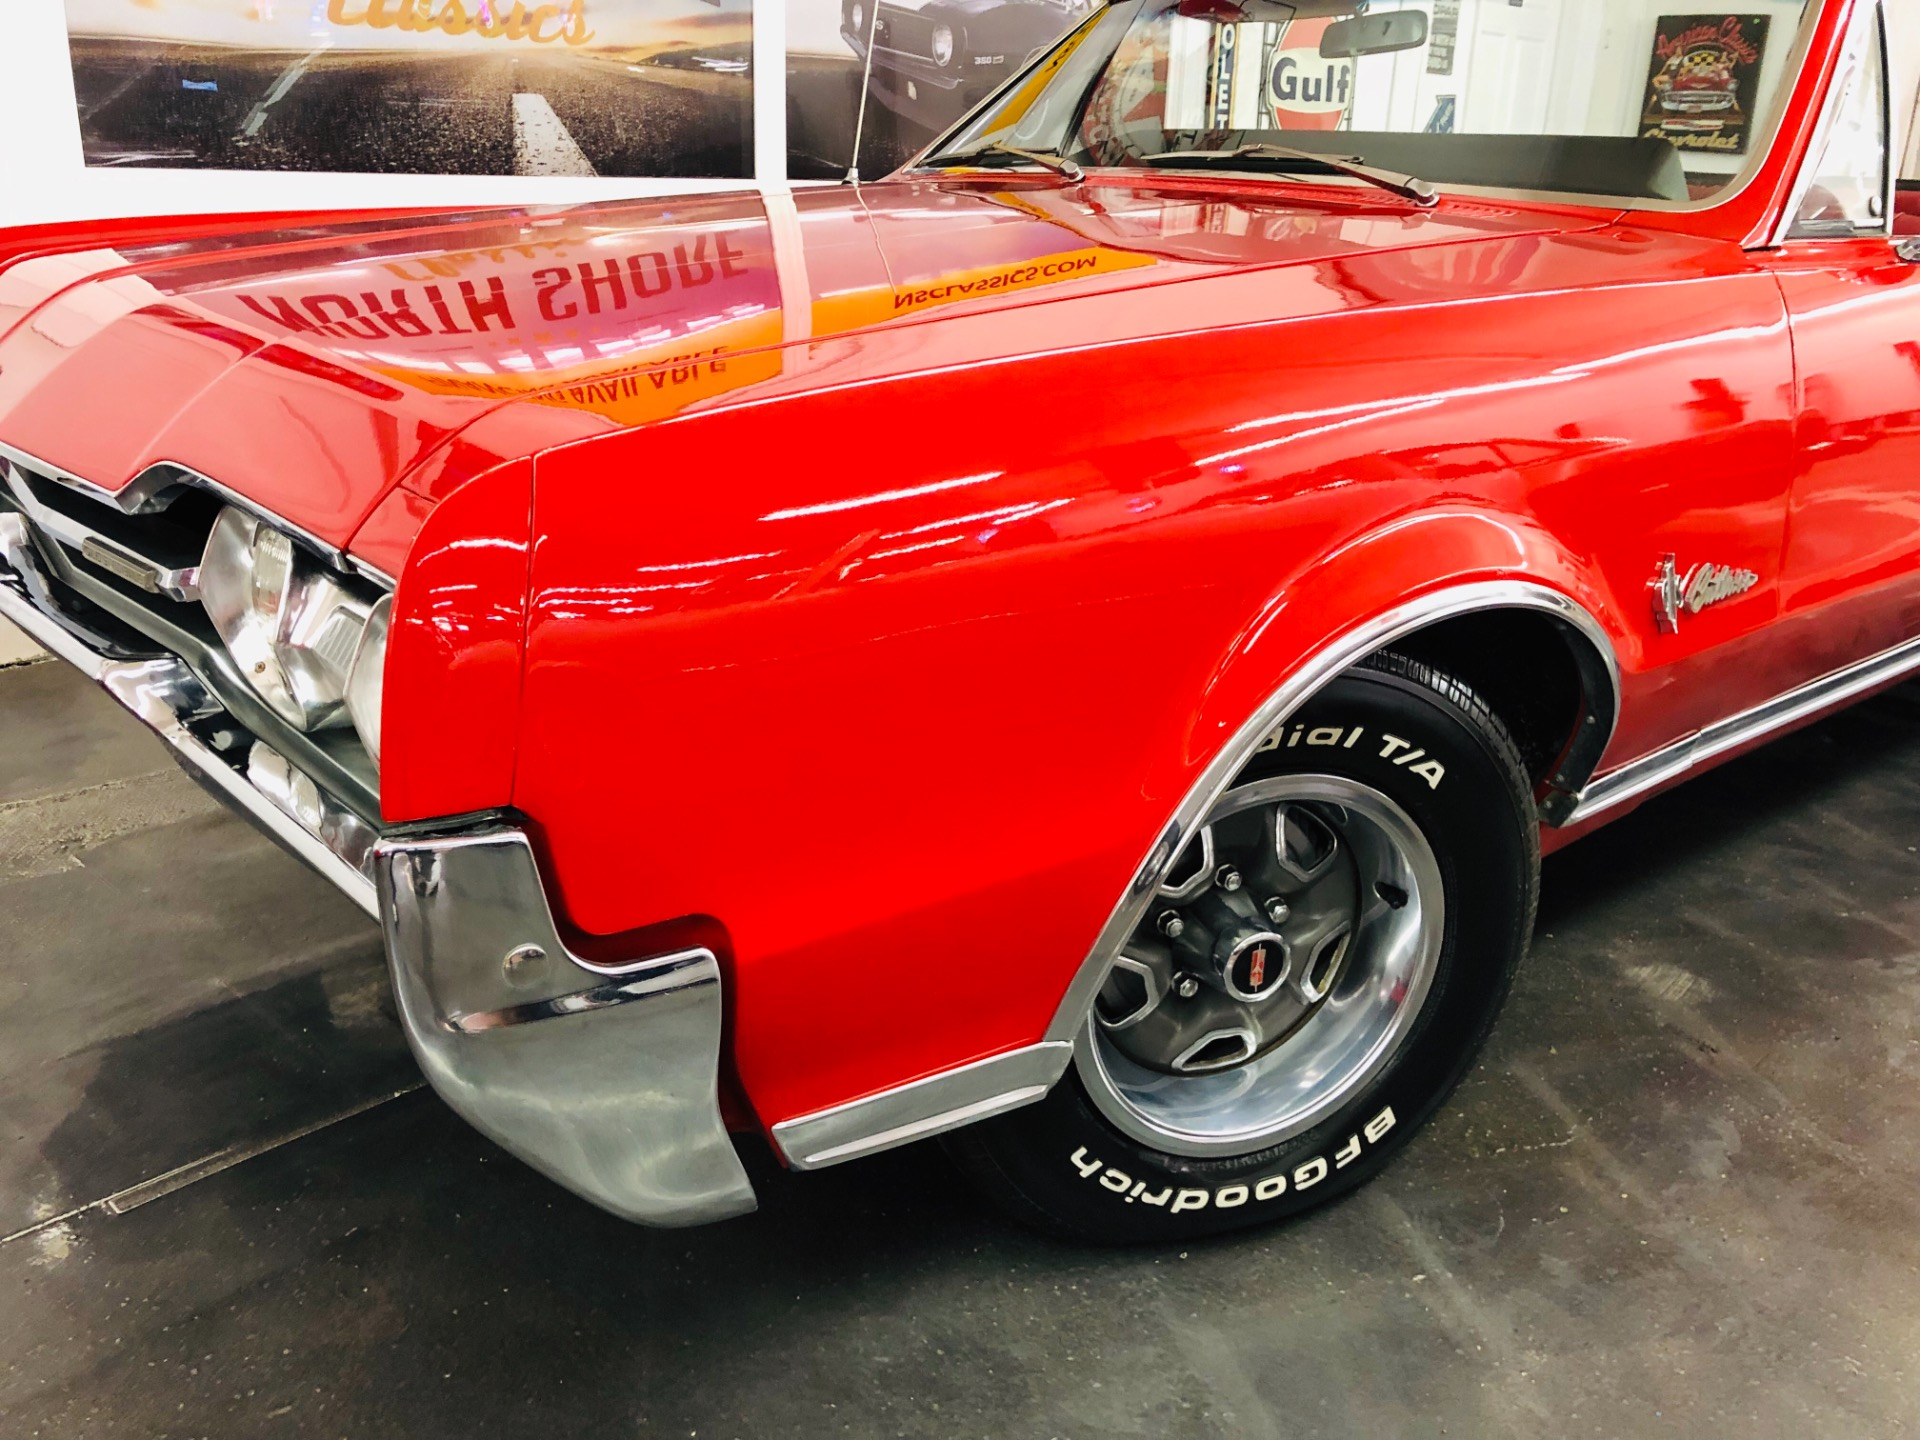 Used 1967 Oldsmobile Cutlass -RARE 4 SPEED CONVERTIBLE-ARIZONA CLEAN MUSCLE CAR- | Mundelein, IL